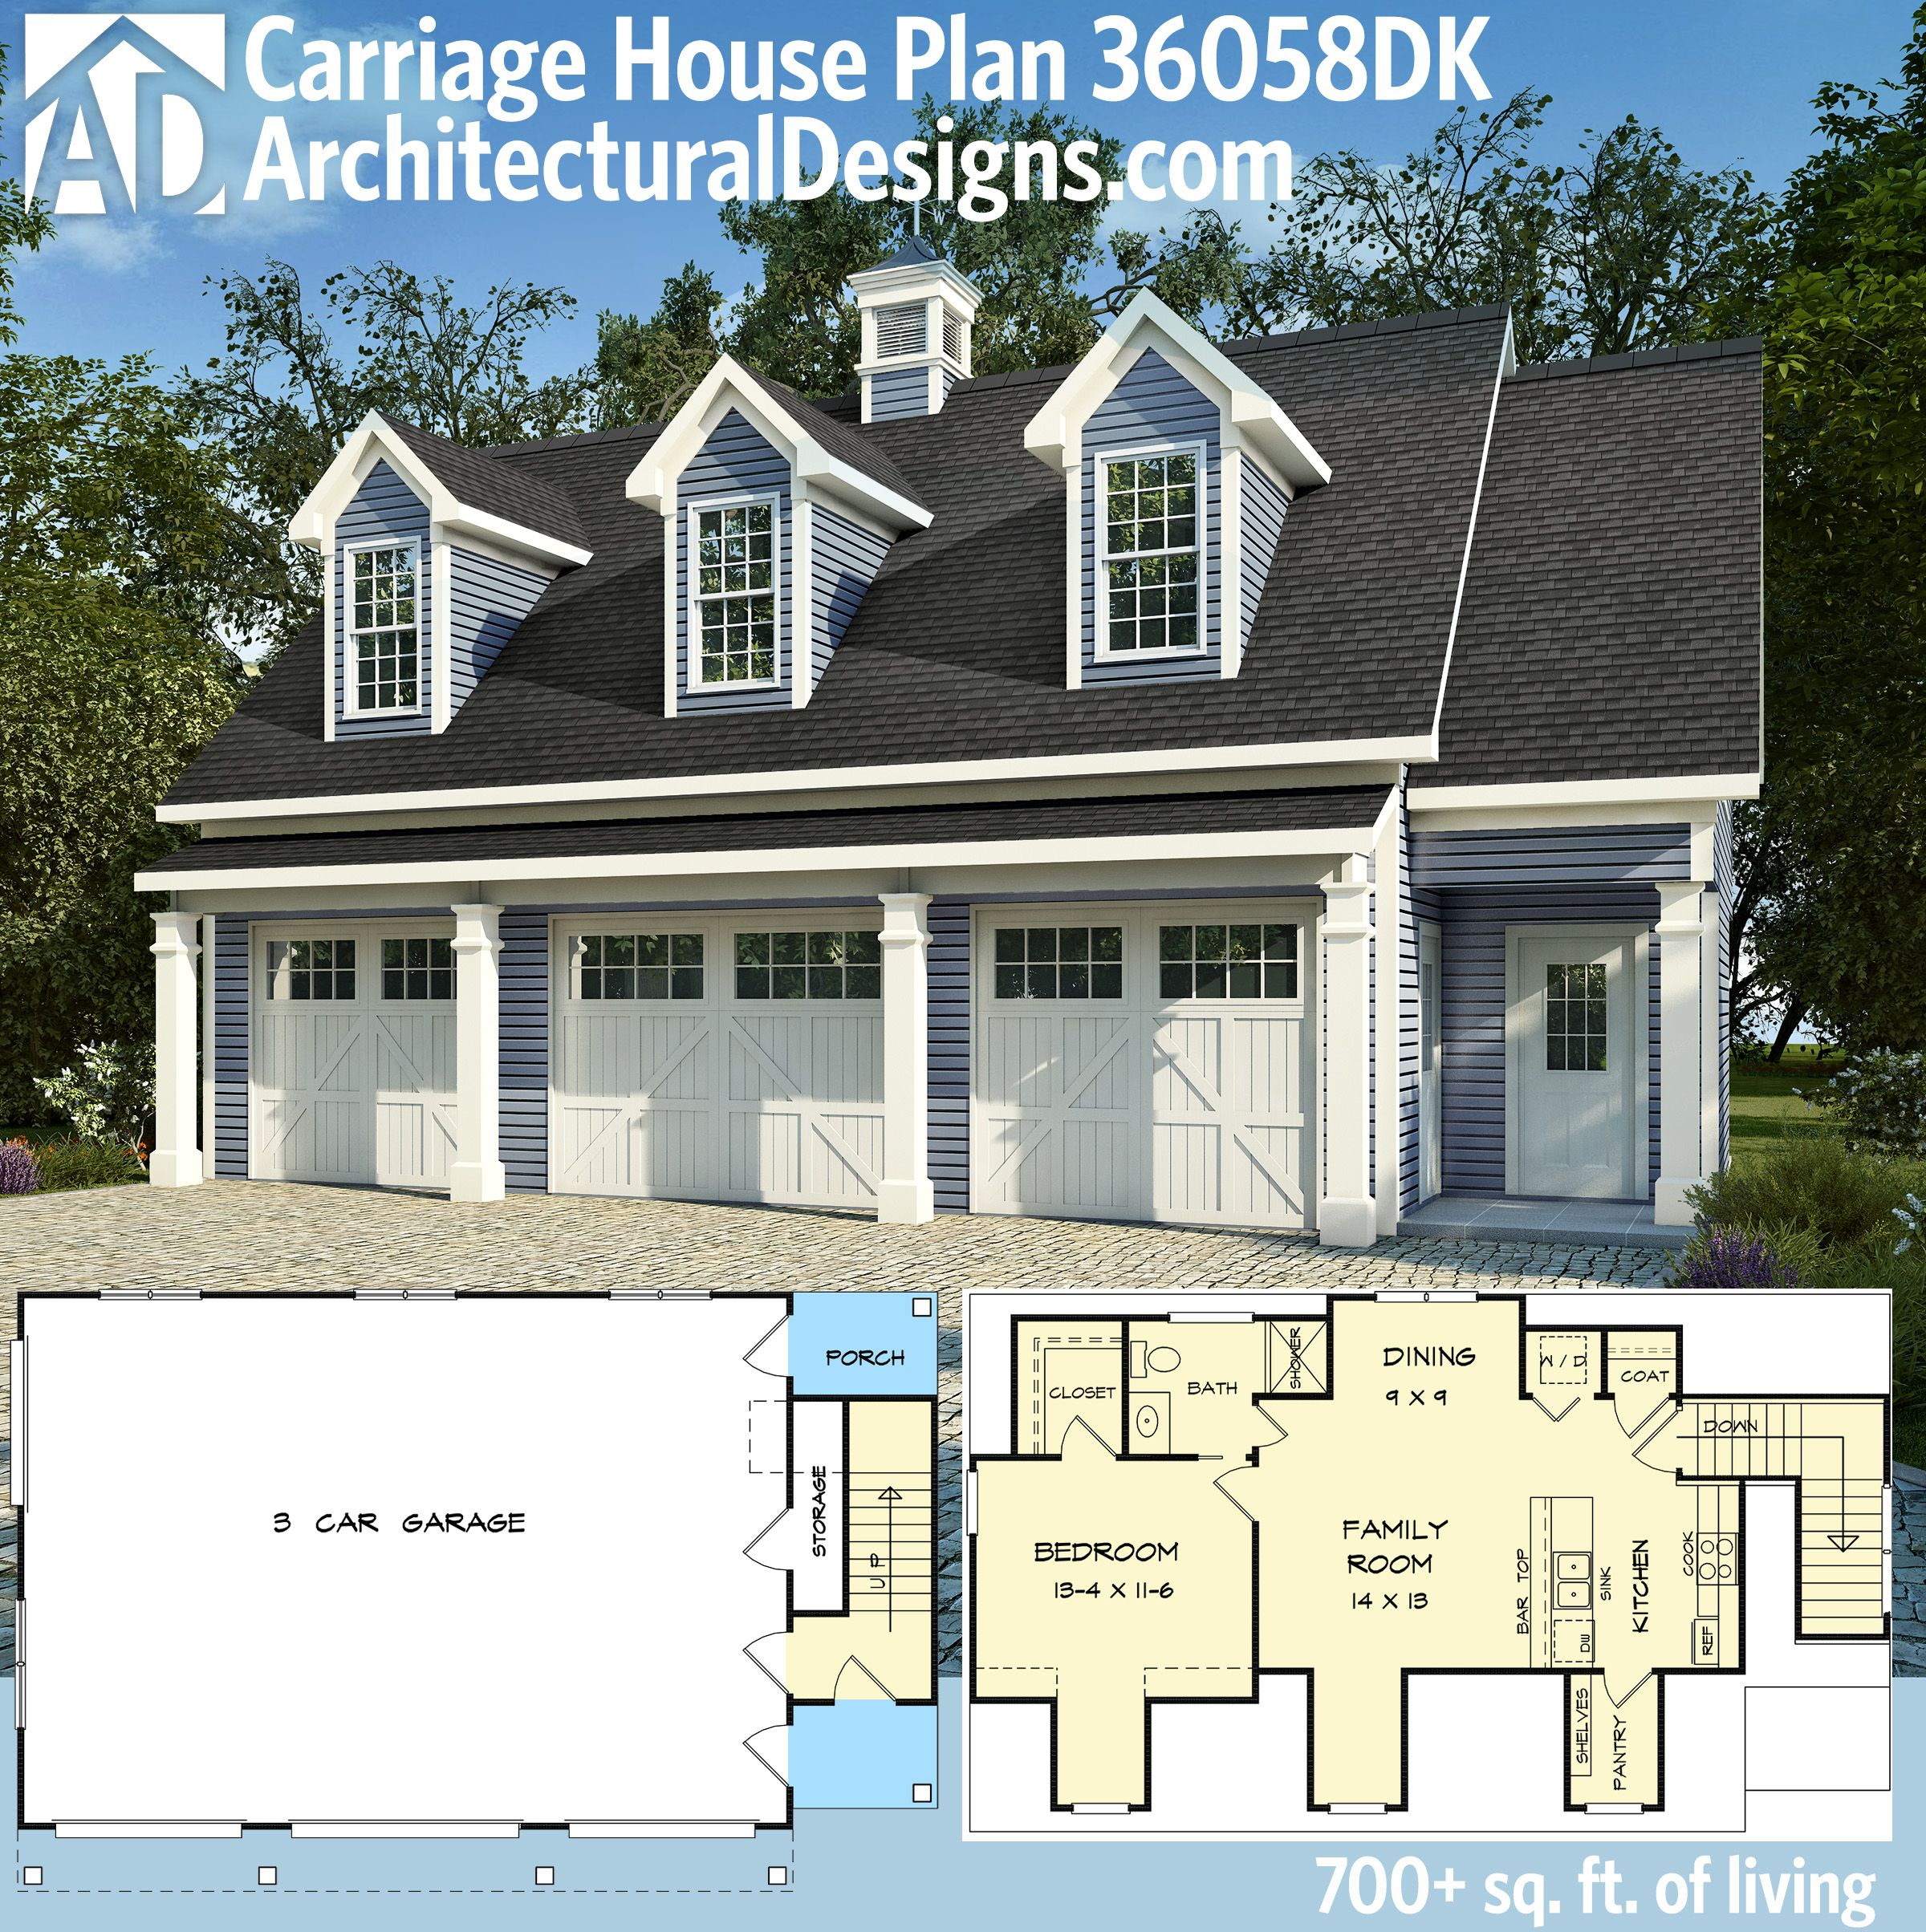 Plan 36058dk 3 car carriage house plan with 3 dormers for 3 car garage apartment floor plans